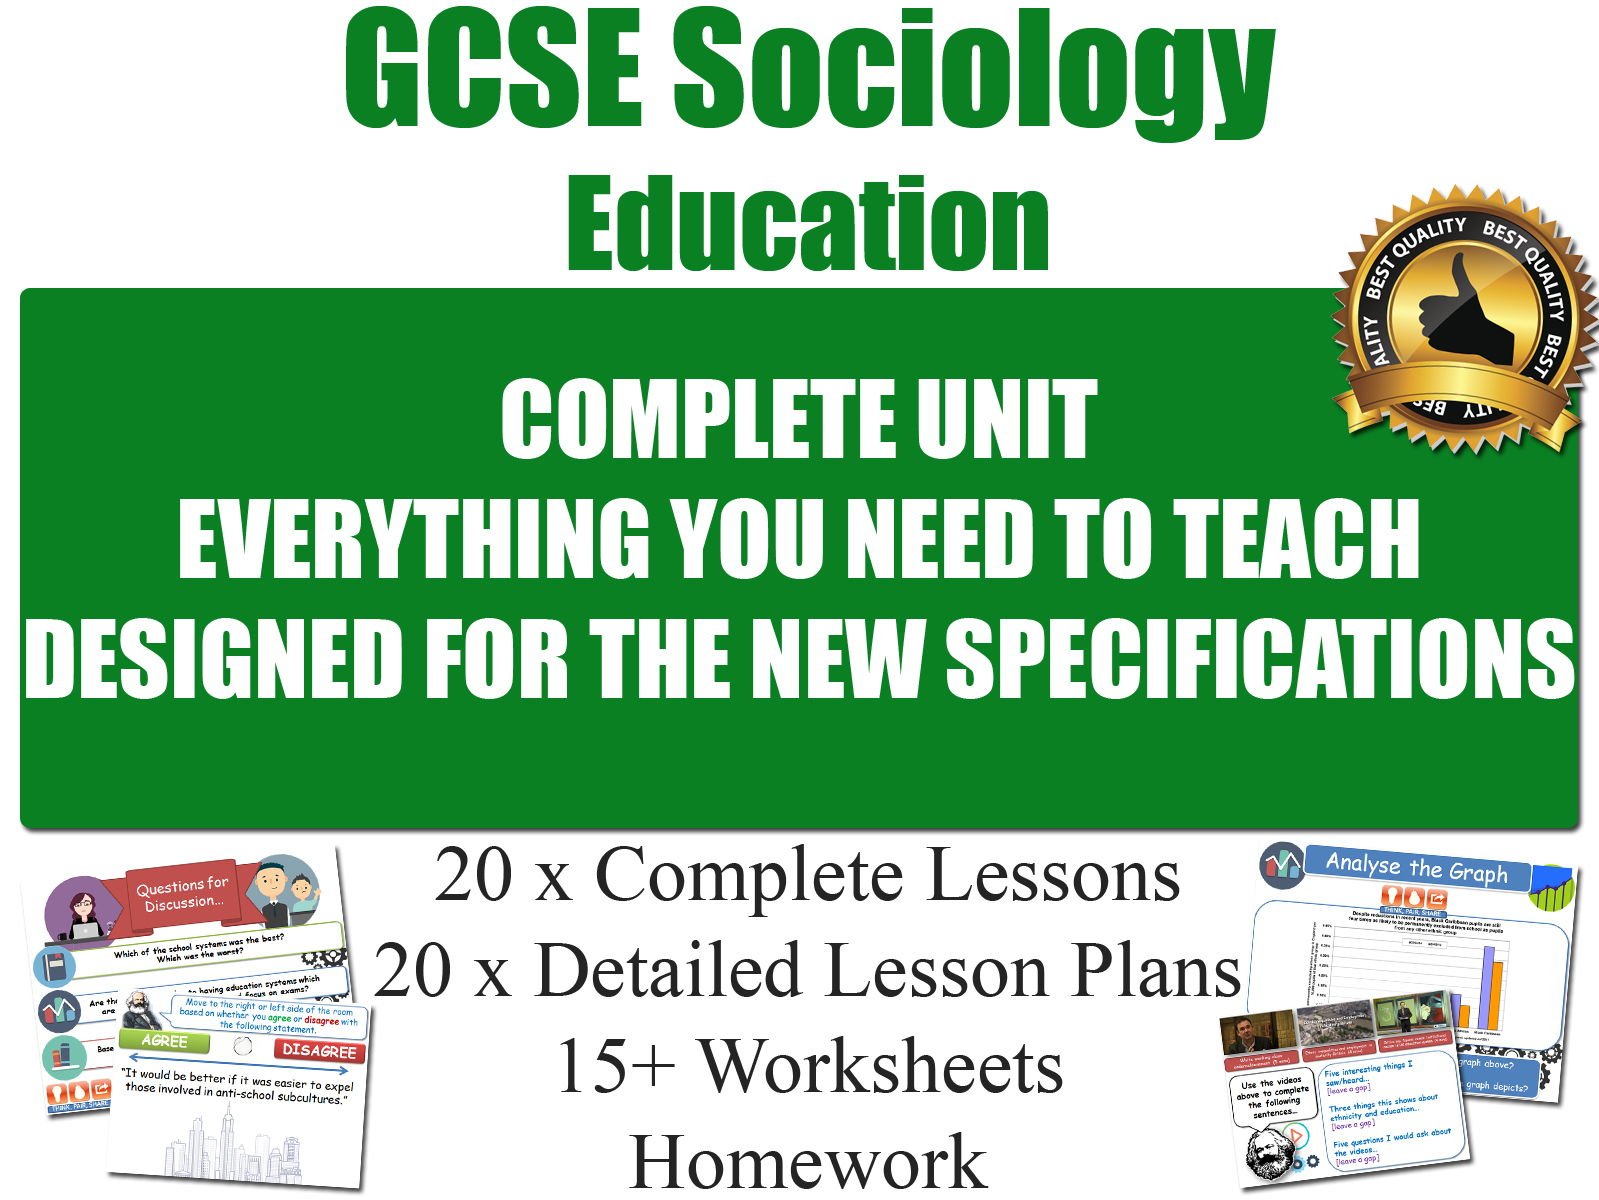 EDUCATION (20 Lessons) [ GCSE Sociology ]